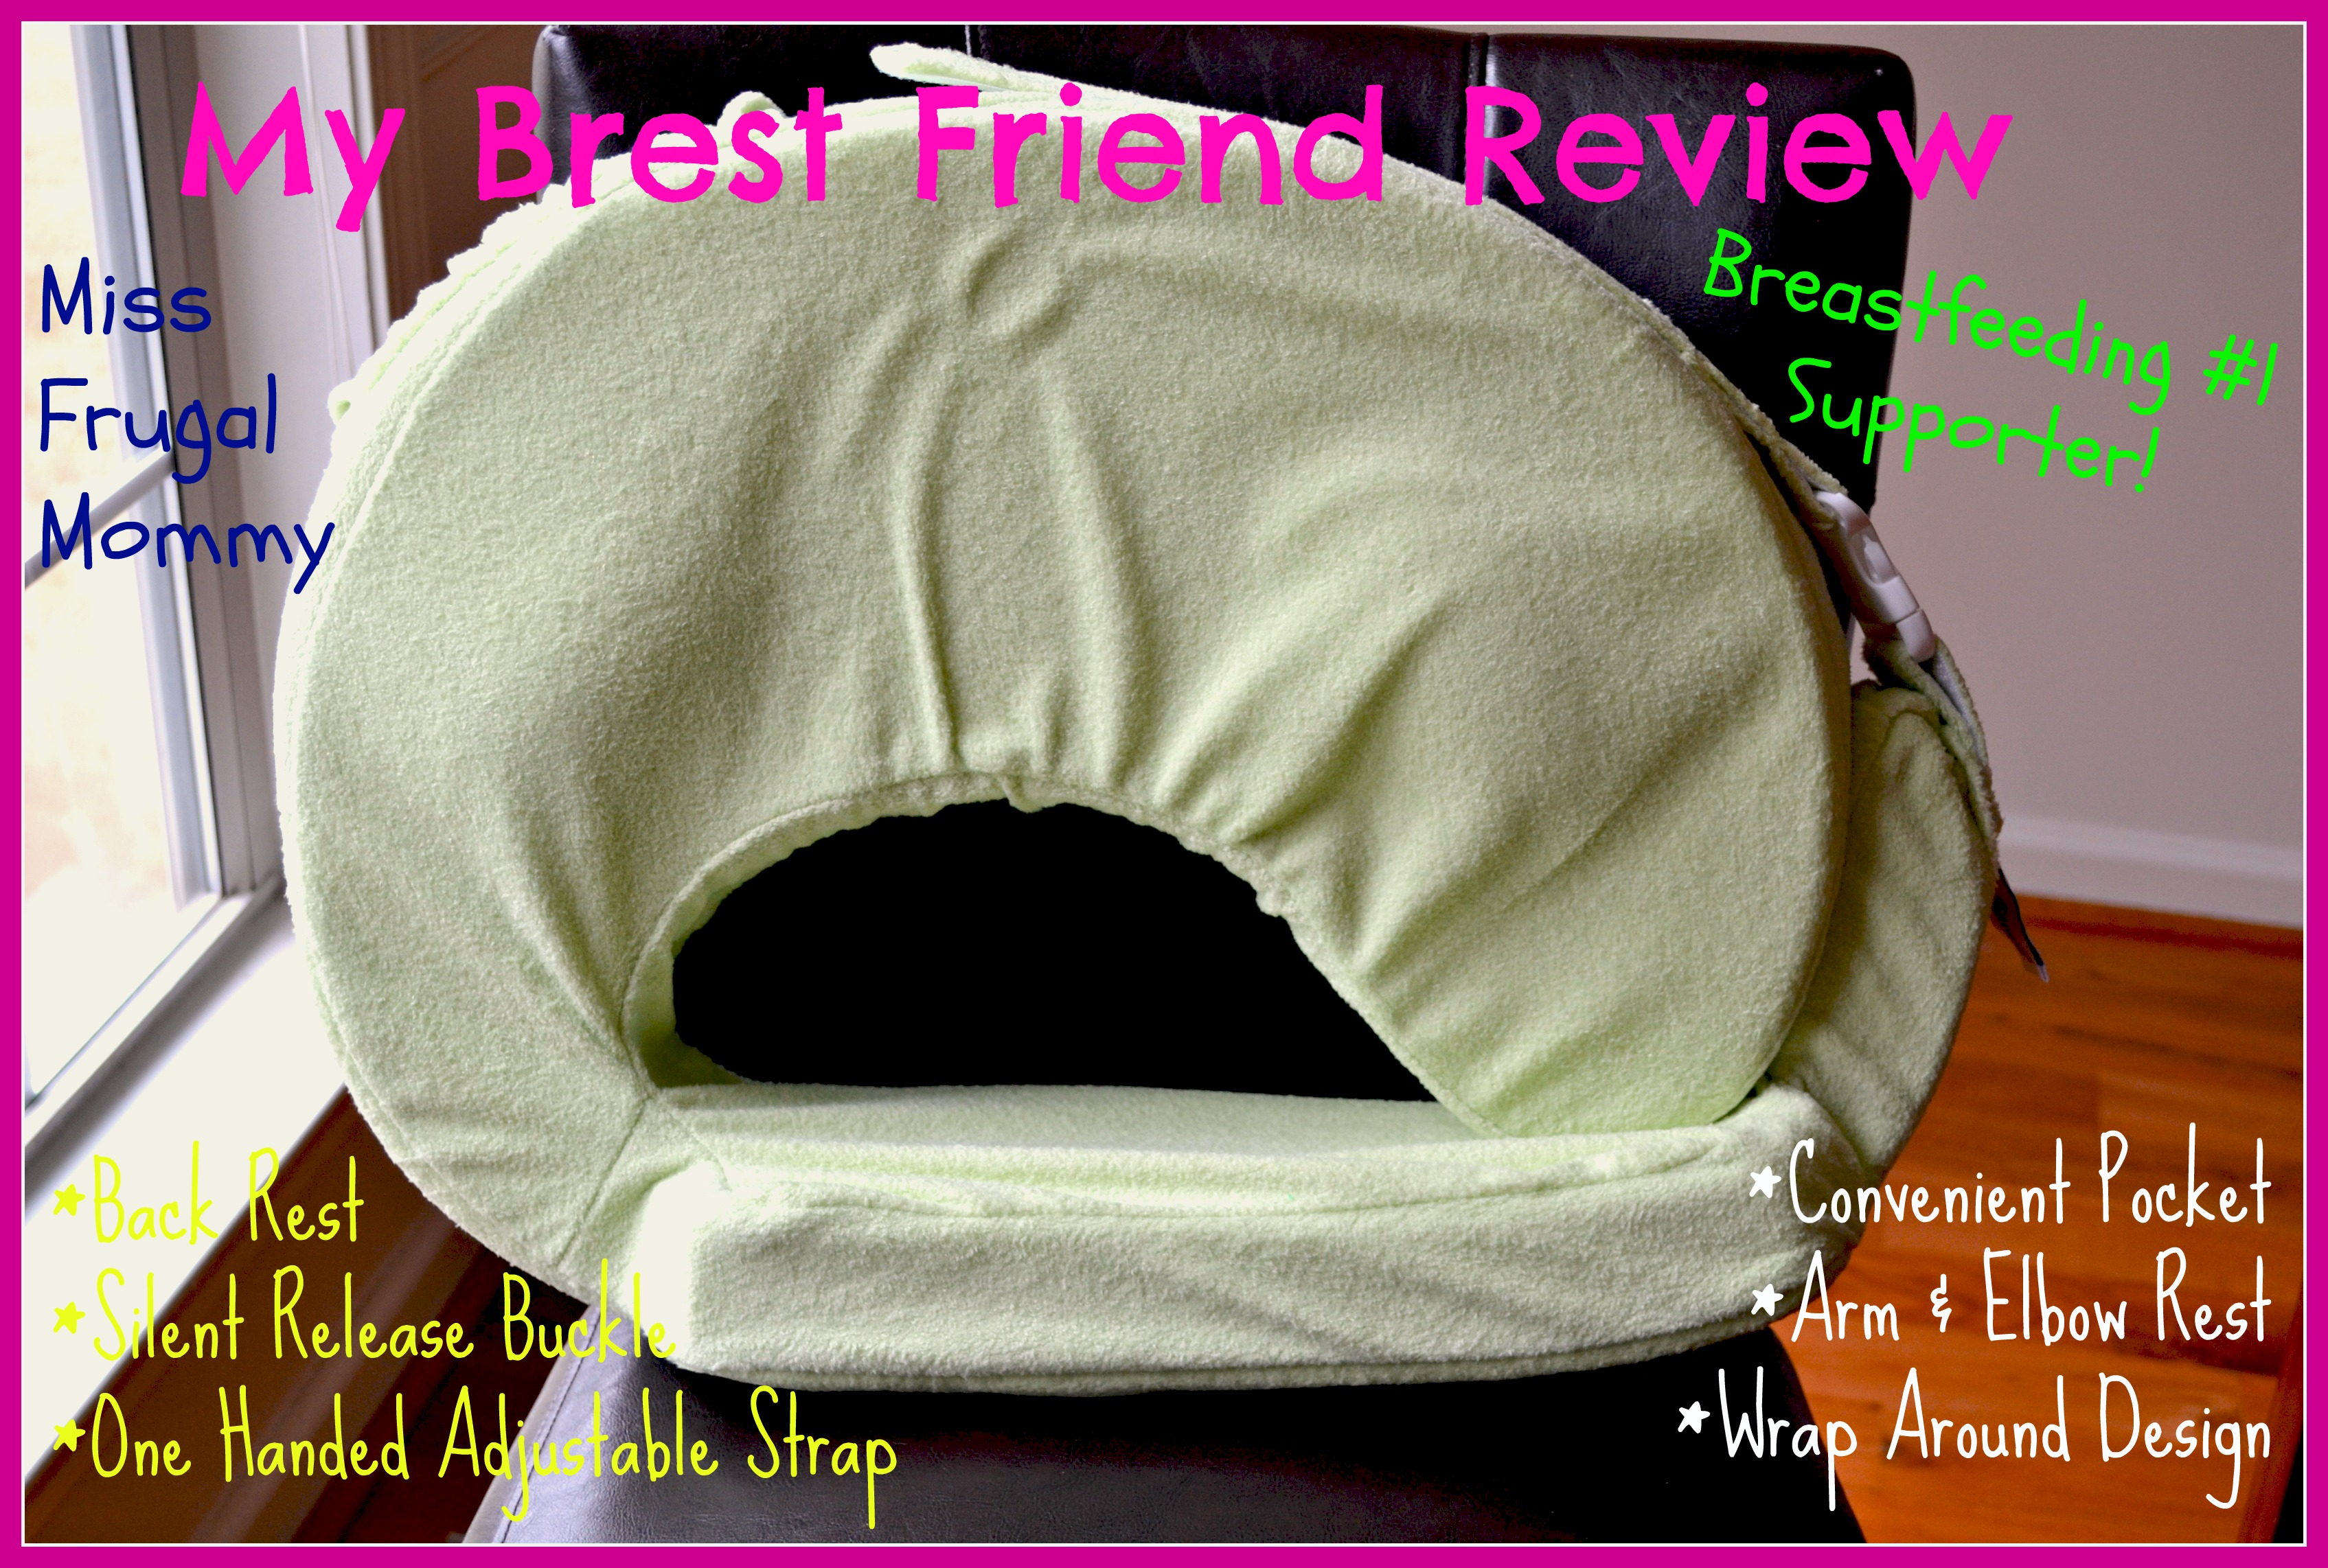 My Brest Friend Deluxe Pillow Review Getting Ready For